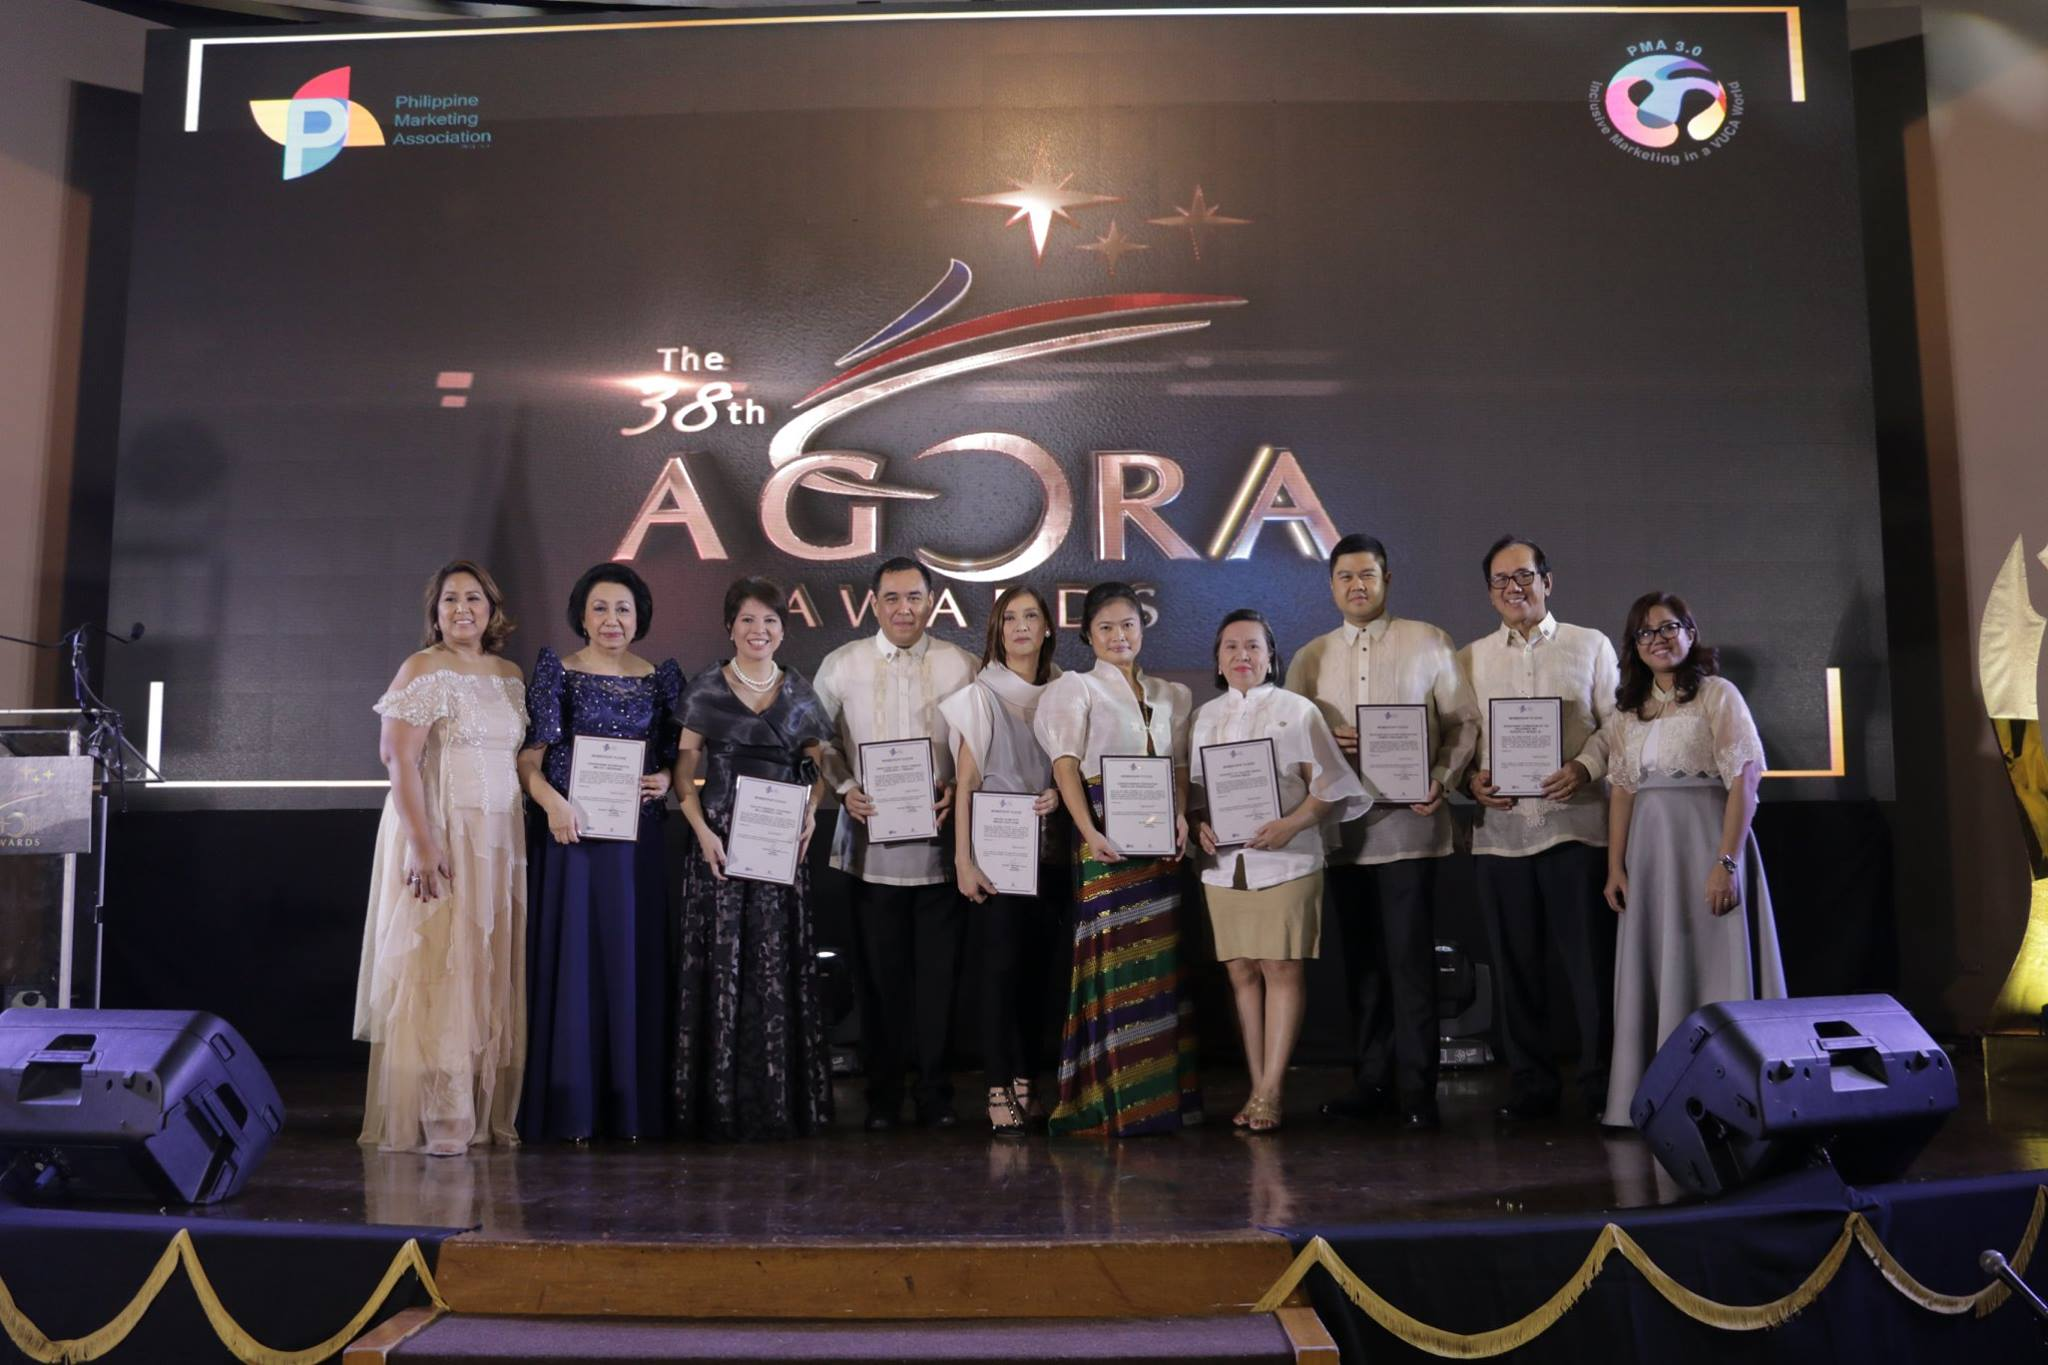 The 38th Agora Awardees with Philippine Marketing Association 2017 President Arlene Padua and 2017 Agora Director, Amrei Dizon  Outstanding Achievement in Entrepreneurship - Small Scale: Mr. Jorge Noel Wieneke, Founder of  Tokyo Tempura   Outstanding Achievement in Export Marketing: Fisher Farms PH   Outstanding Achievement in Marketing Management: Ms. Mylene Lopa, Chief Marketing Officer of  Sun Life Financial Philippines   Outstanding Achievement in Entrepreneurship - Medium Scale: Ms. Haraya Del Rosario-Gust  StraightArrow Corporation   Outstanding Achievement in Marketing Communications: Ms. Merlee Cruz-Jayme, CEO of  Dentsu Jayme Syfu   Outstanding Achievement in Marketing Education: Prof. Cynthia Abella, Associate Professor of the College of Business Administration, University of the East (UE)   Outstanding Achievement in Advocacy Marketing: Advertising Foundation of the Philippines  Jun Nicdao   Outstanding Achievement in Entrepreneurship - Large Scale: Dr. Roberto Macasaet Sr., Founder and Chairman of  Maxicare Healthcare Corporation   Honorary Agora for Nation-Building: DTI Philippines Secretary, Mr. Ramon Lopez